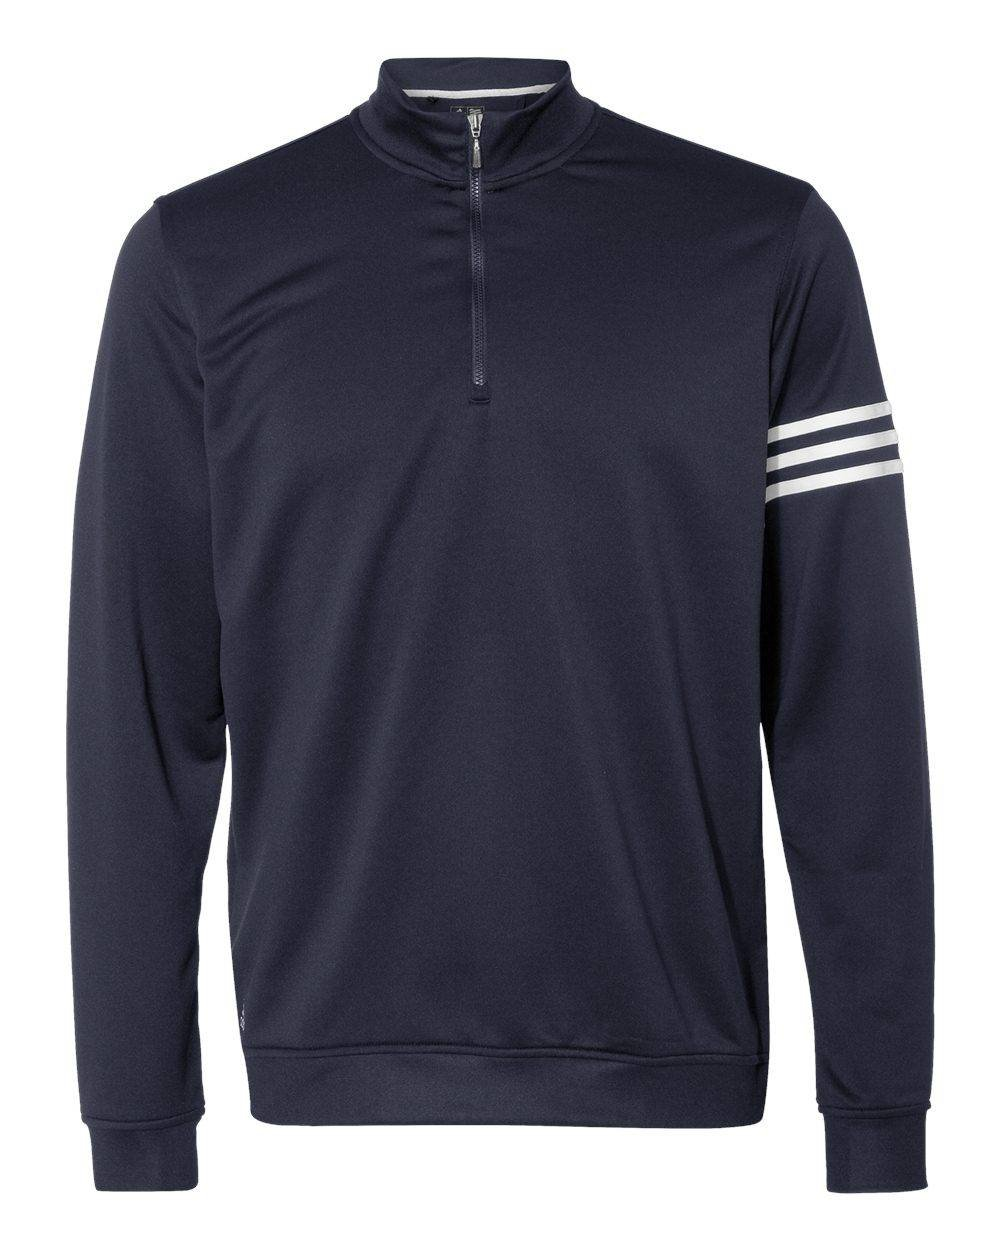 Adidas Mens ClimaLite 3-Stripes Pullover A190 -Navy/ White 4XL by adidas